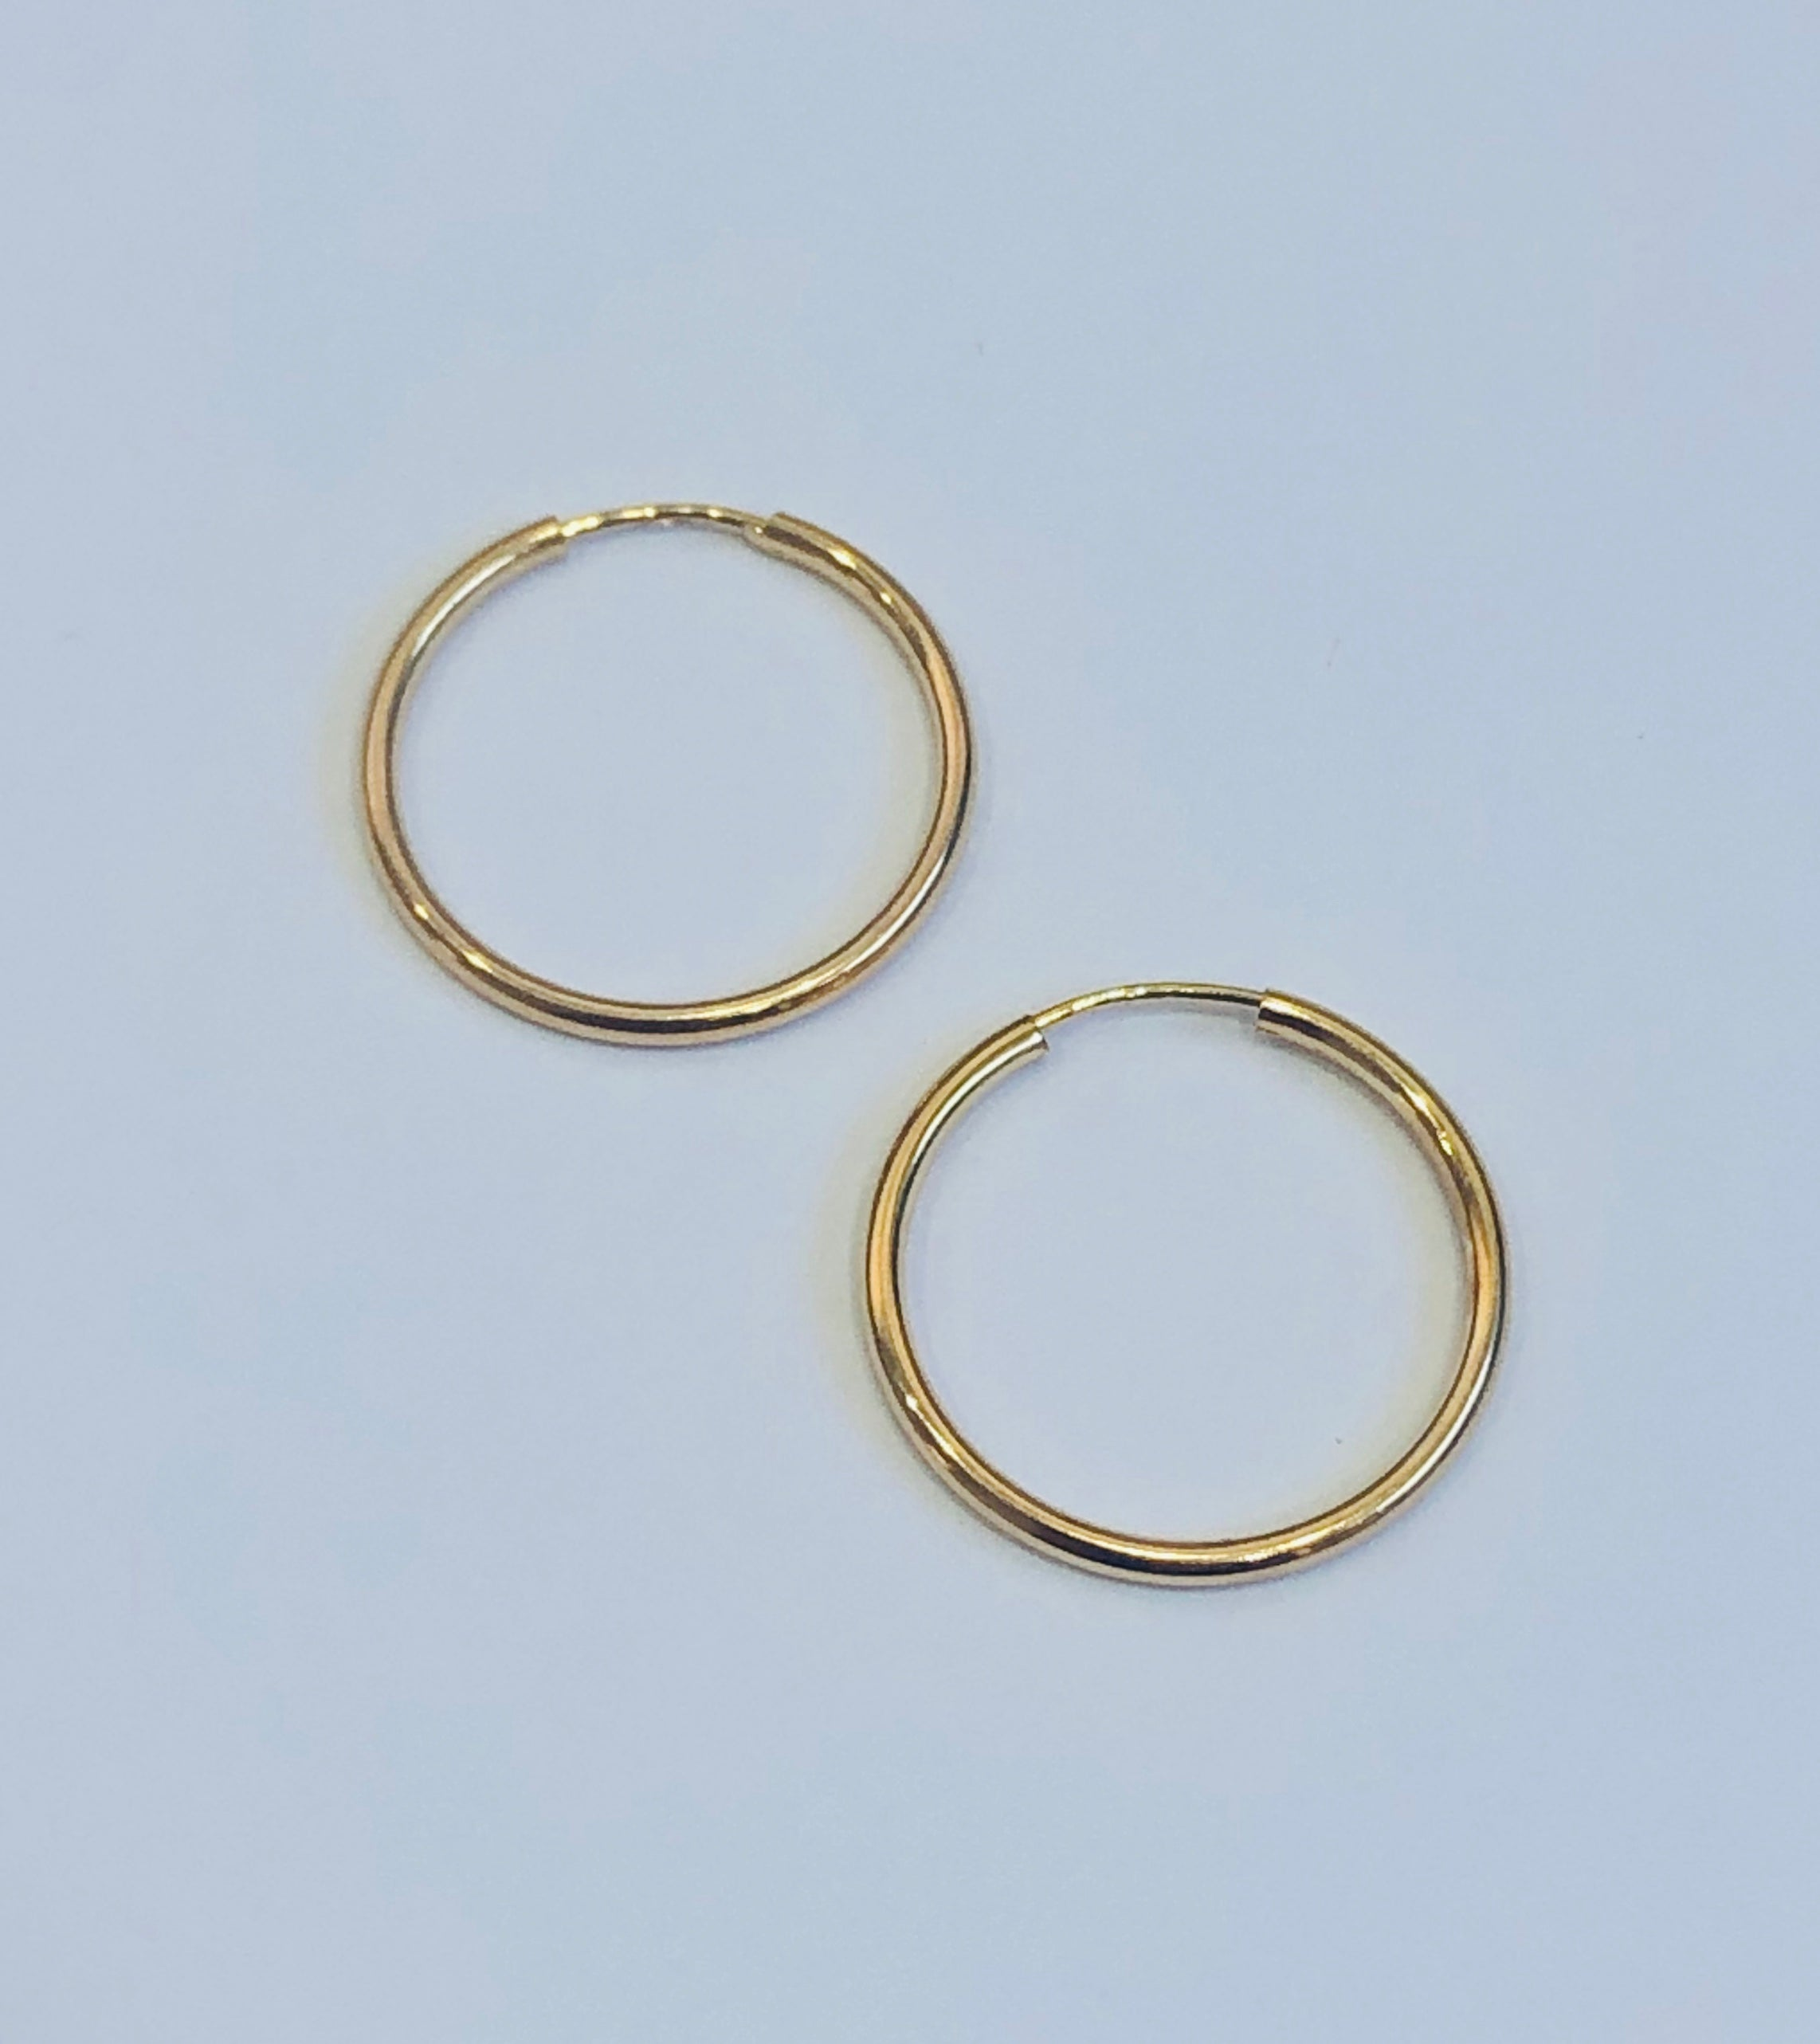 9ct Gold Hoop Polished Earrings 16mm x 1.5mm - 008